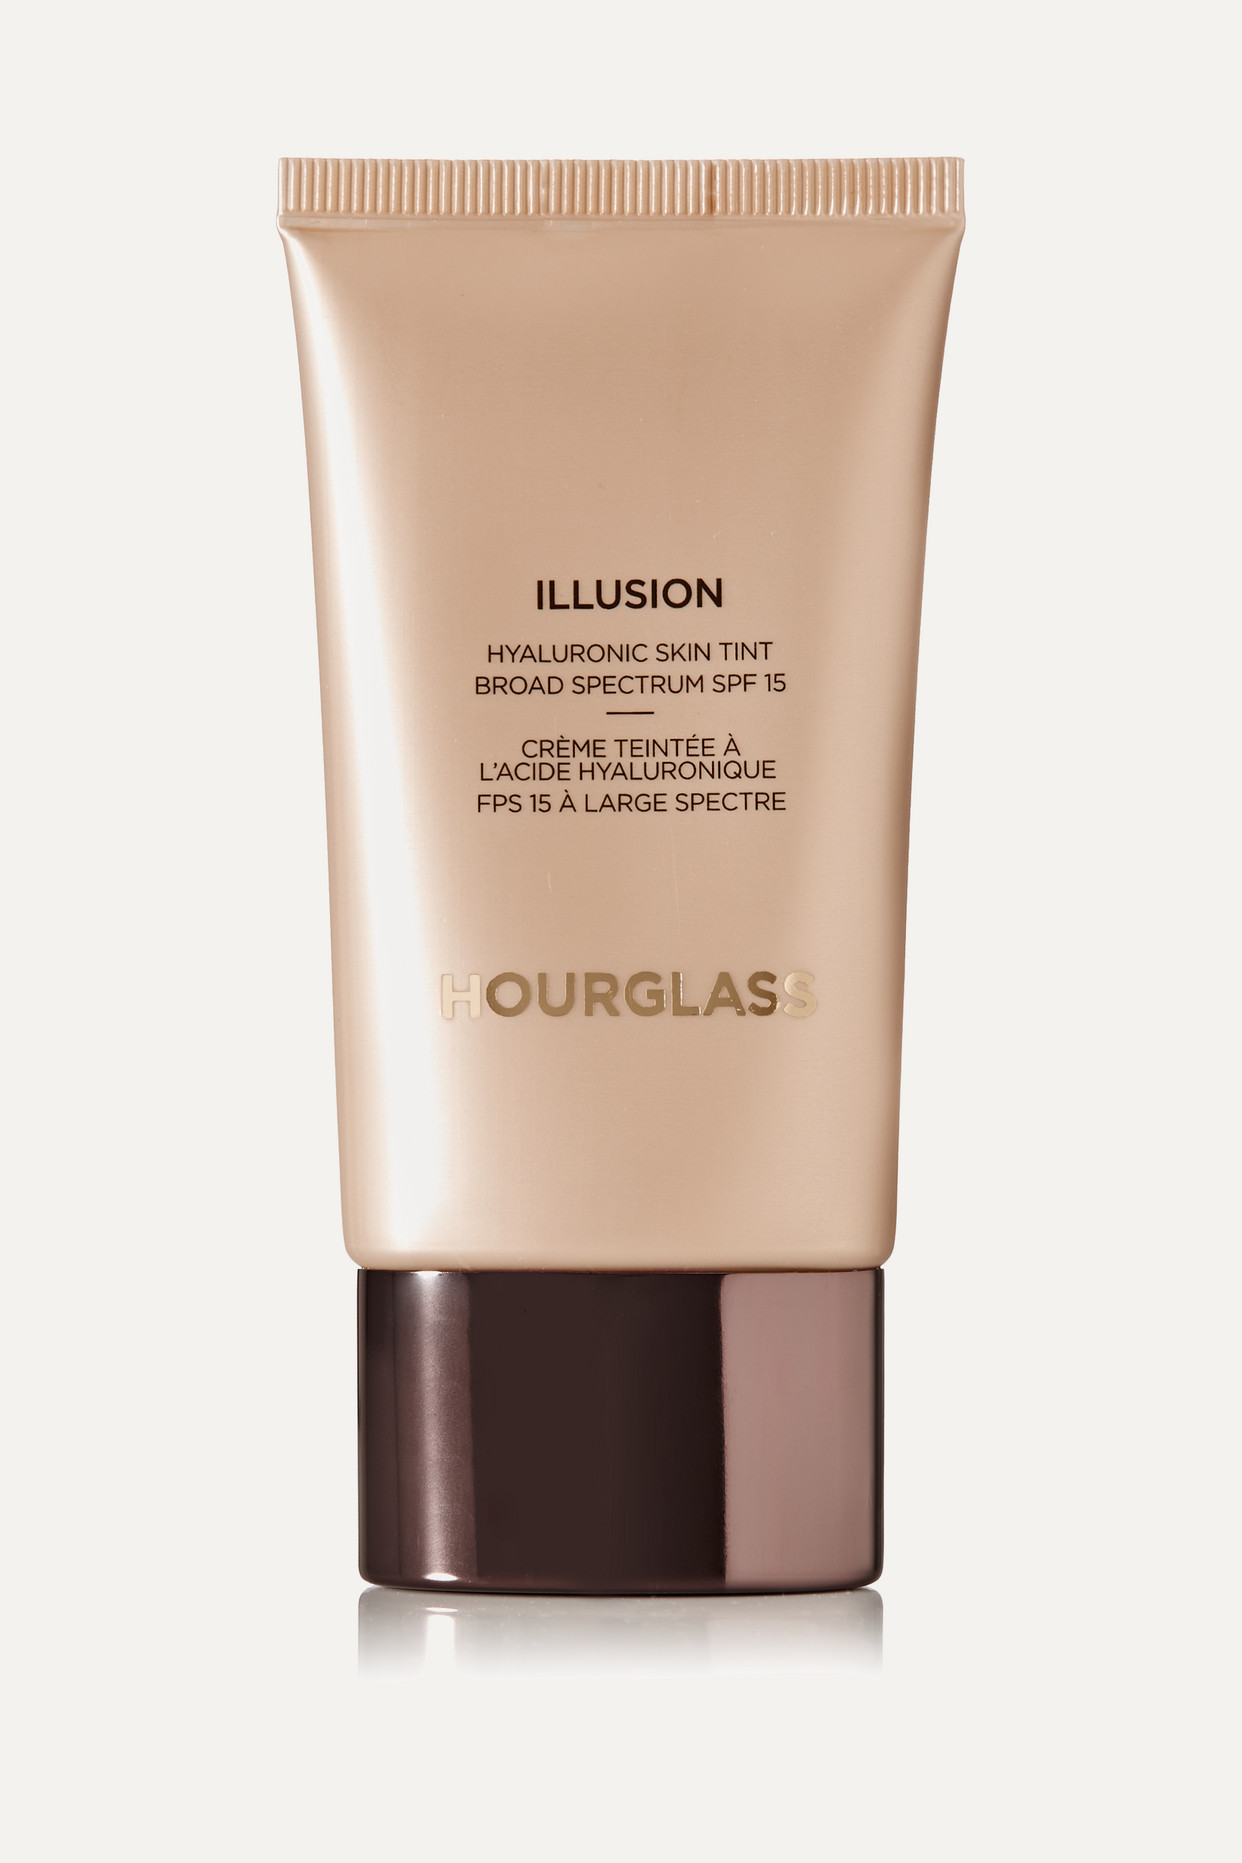 HOURGLASS - Illusion® Hyaluronic Skin Tint Spf15 - Light Beige, 30ml - Neutrals - one size